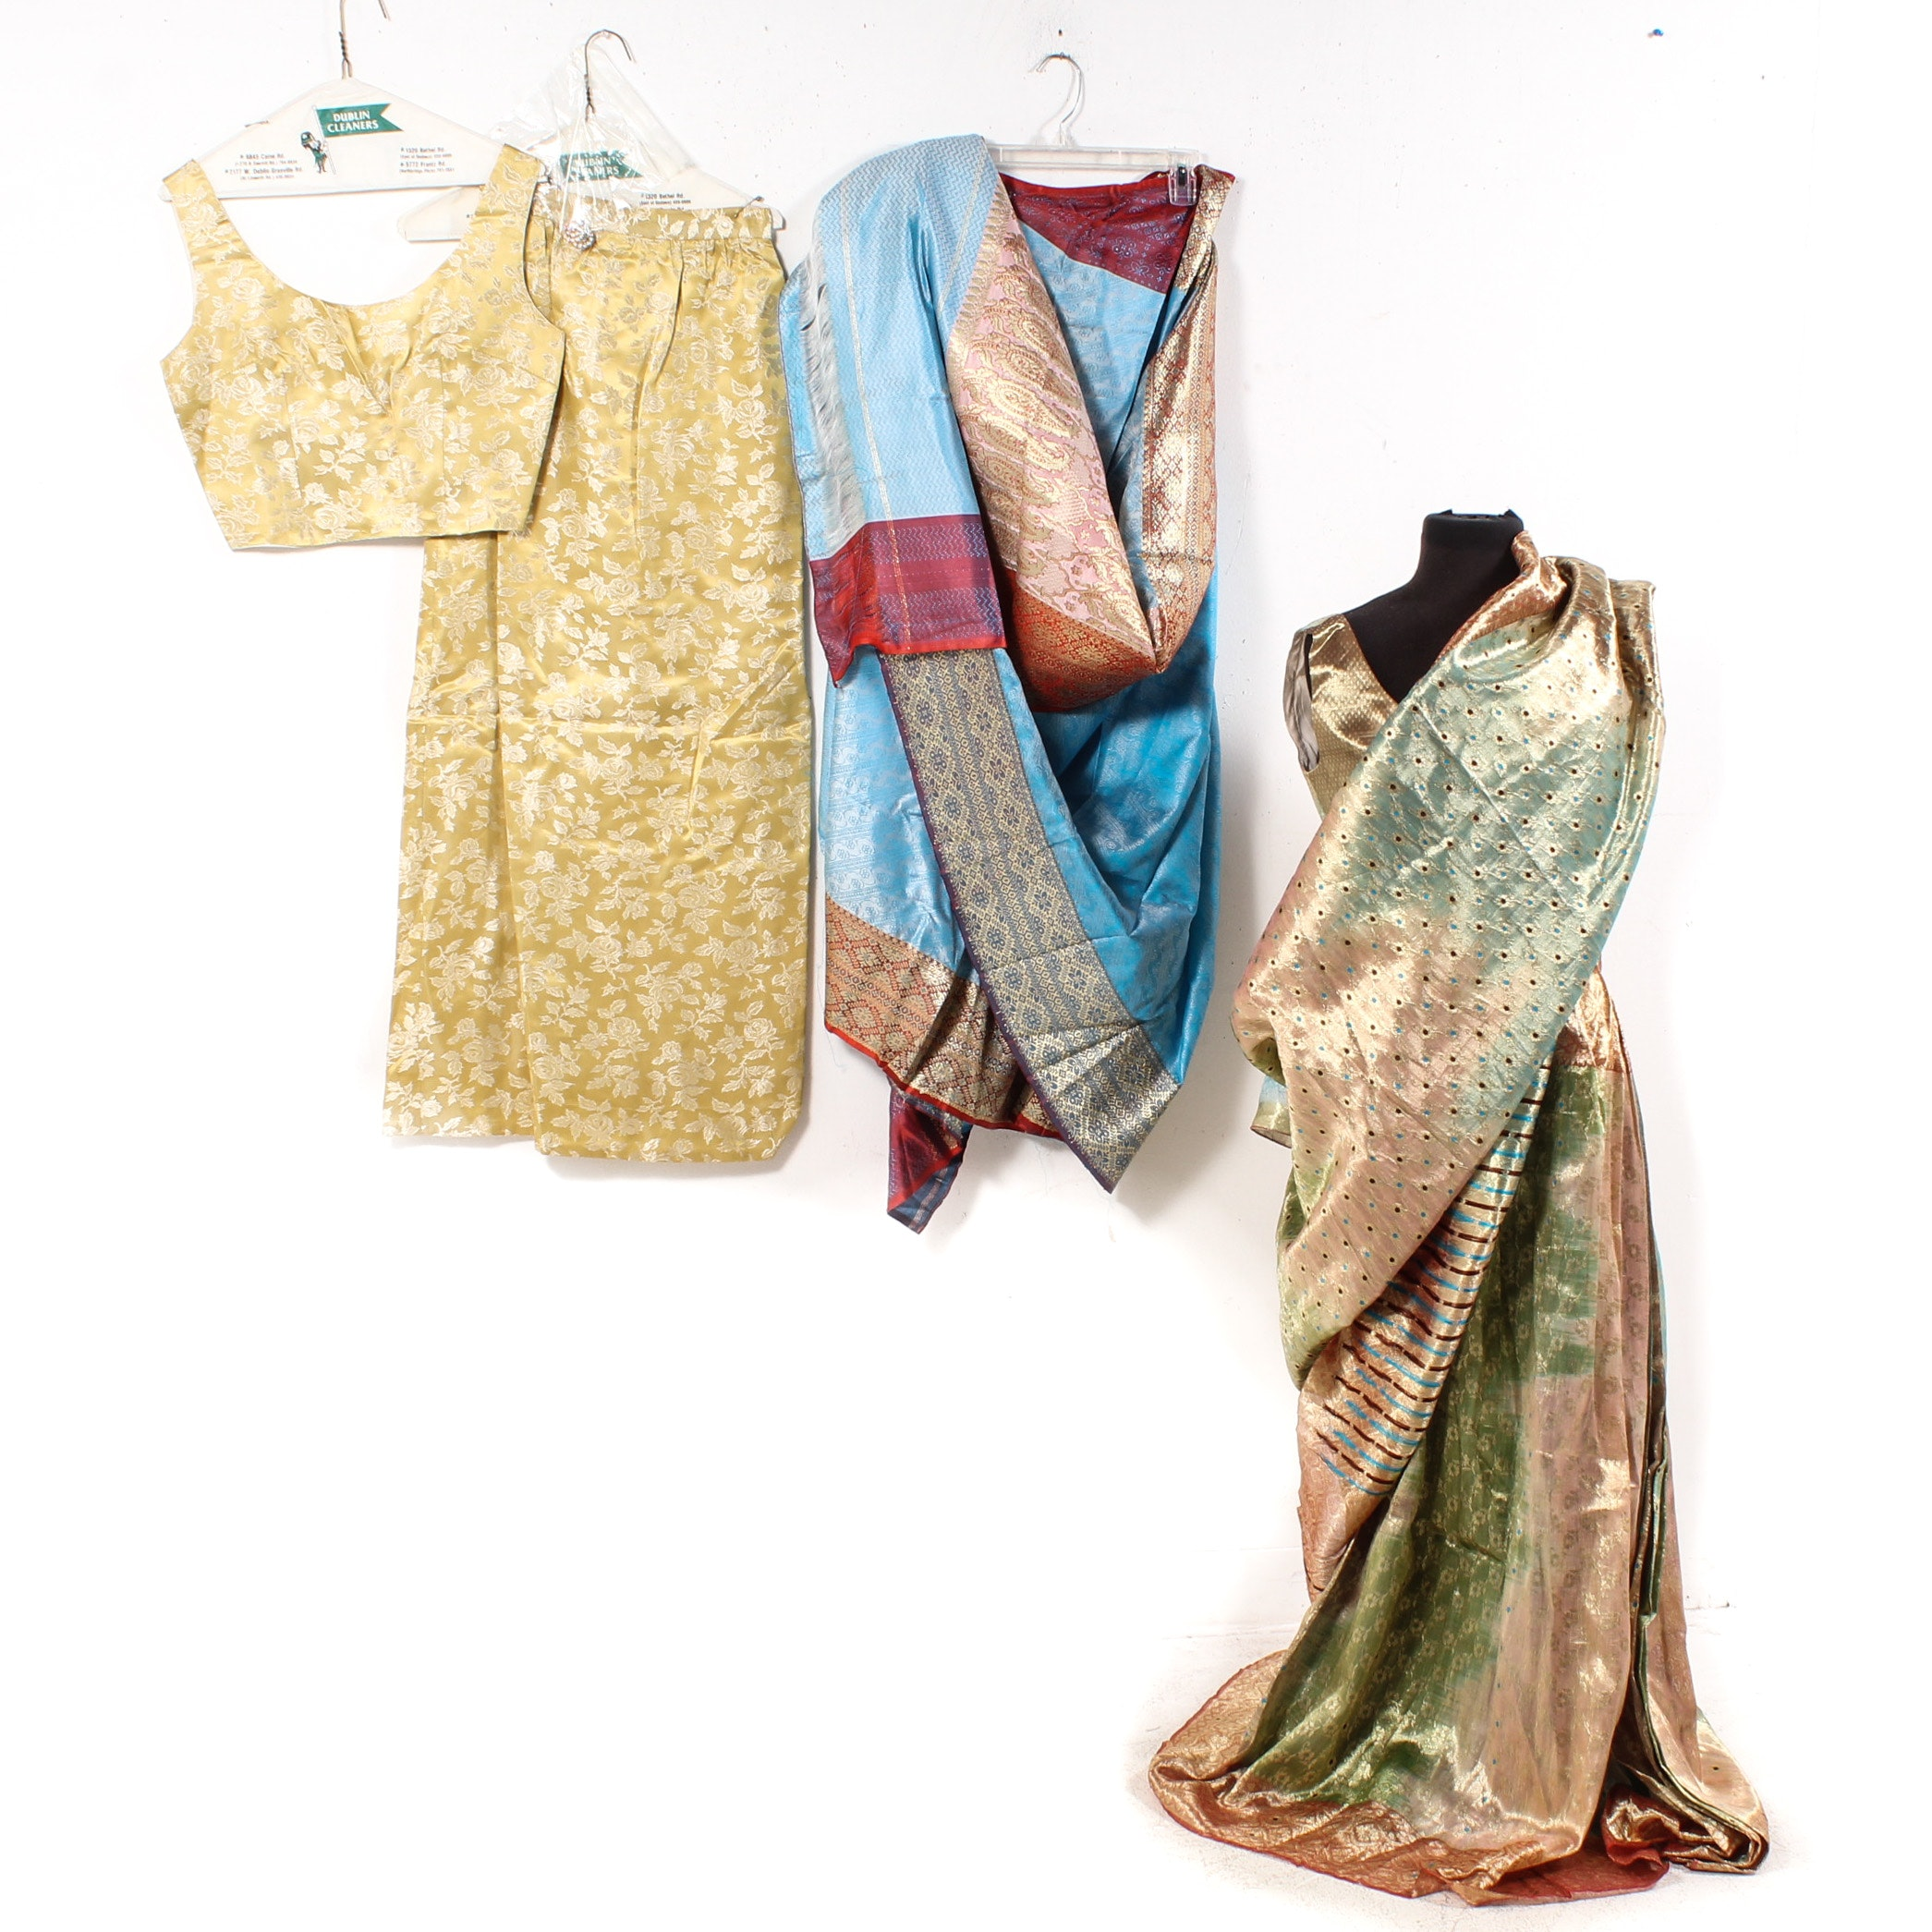 Women's Traditional Indian Silk Clothing with Cholis, Skirts, and Saris